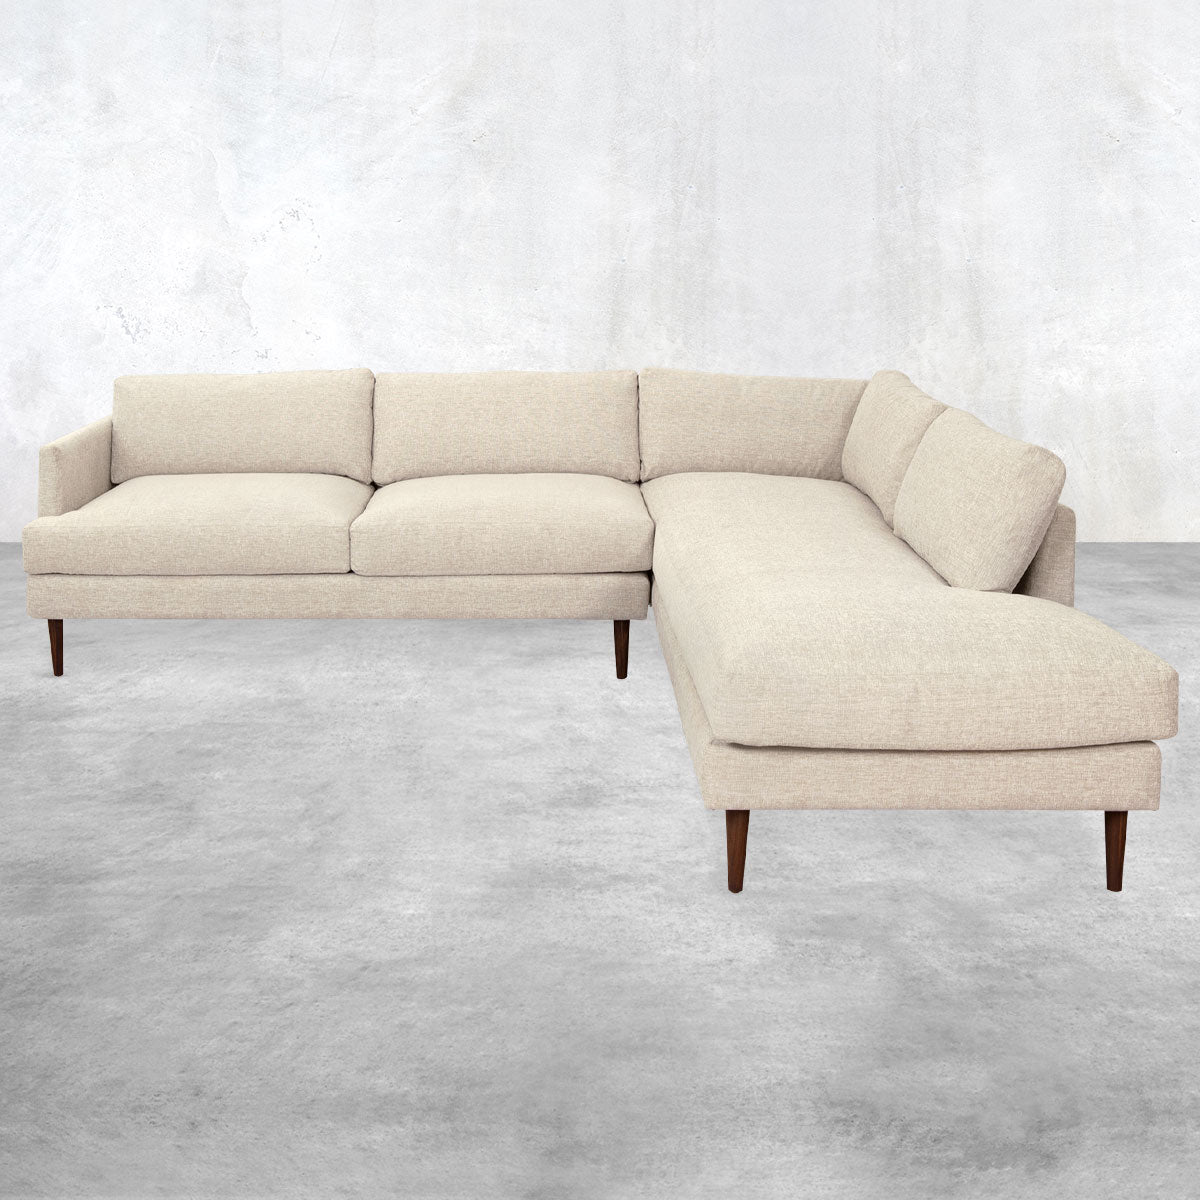 Two-piece sectional sofa with a chaise end, overstuffed pillow back, brown cone legs and light beige upholstery.